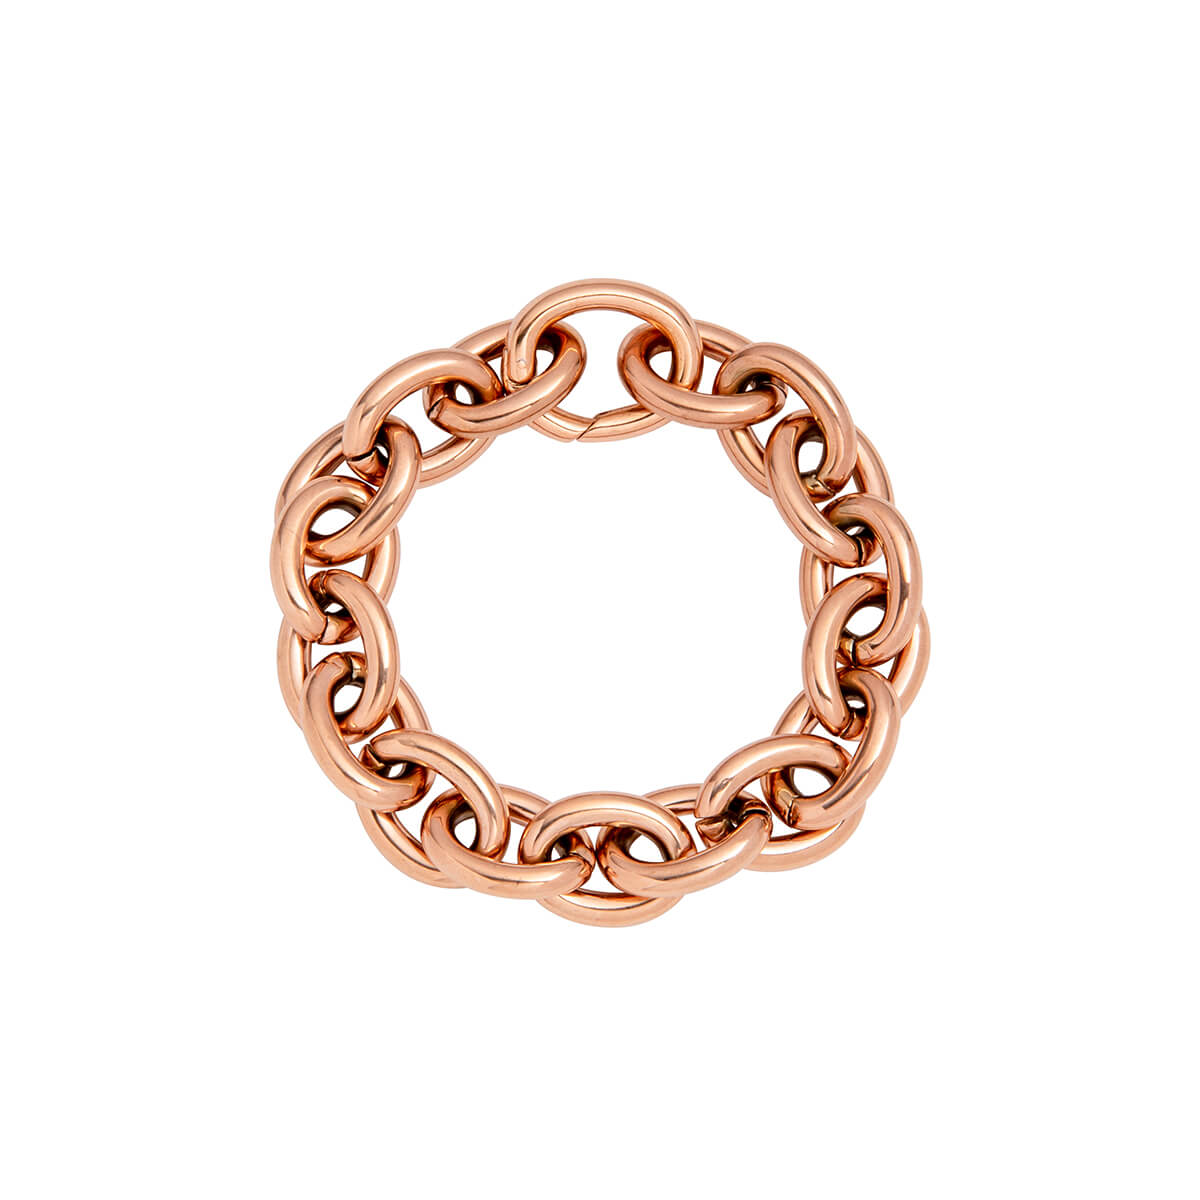 Selected Oval Link Chain Bracelet (Rose Gold)